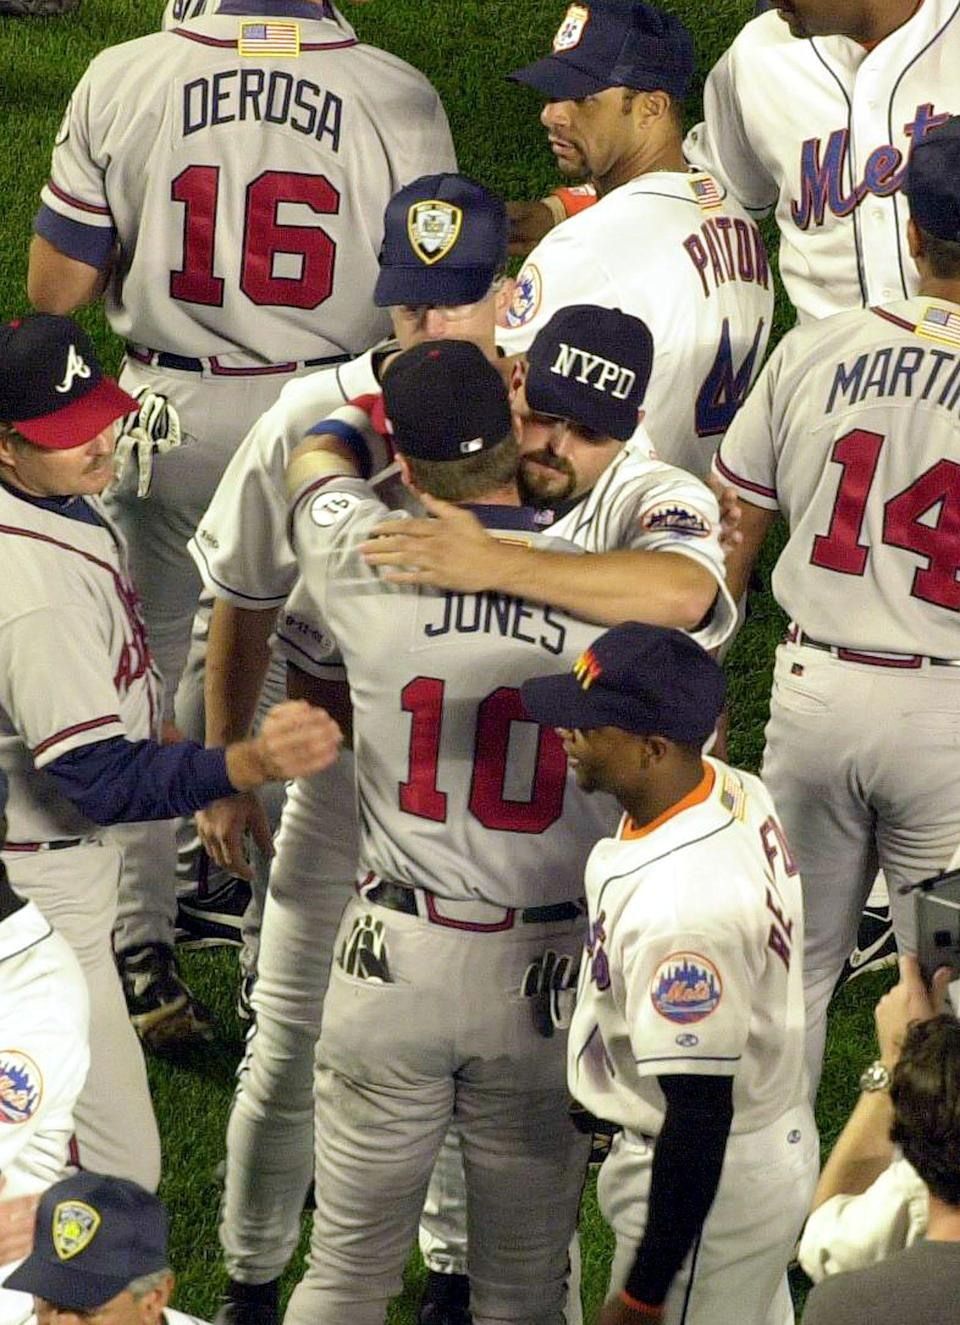 New York Mets pitcher Rick White, wearing an NYPD cap, embraces Atlanta Braves third baseman Chipper Jones before the start of the Sept. 21, 2001, game at Shea Stadium.